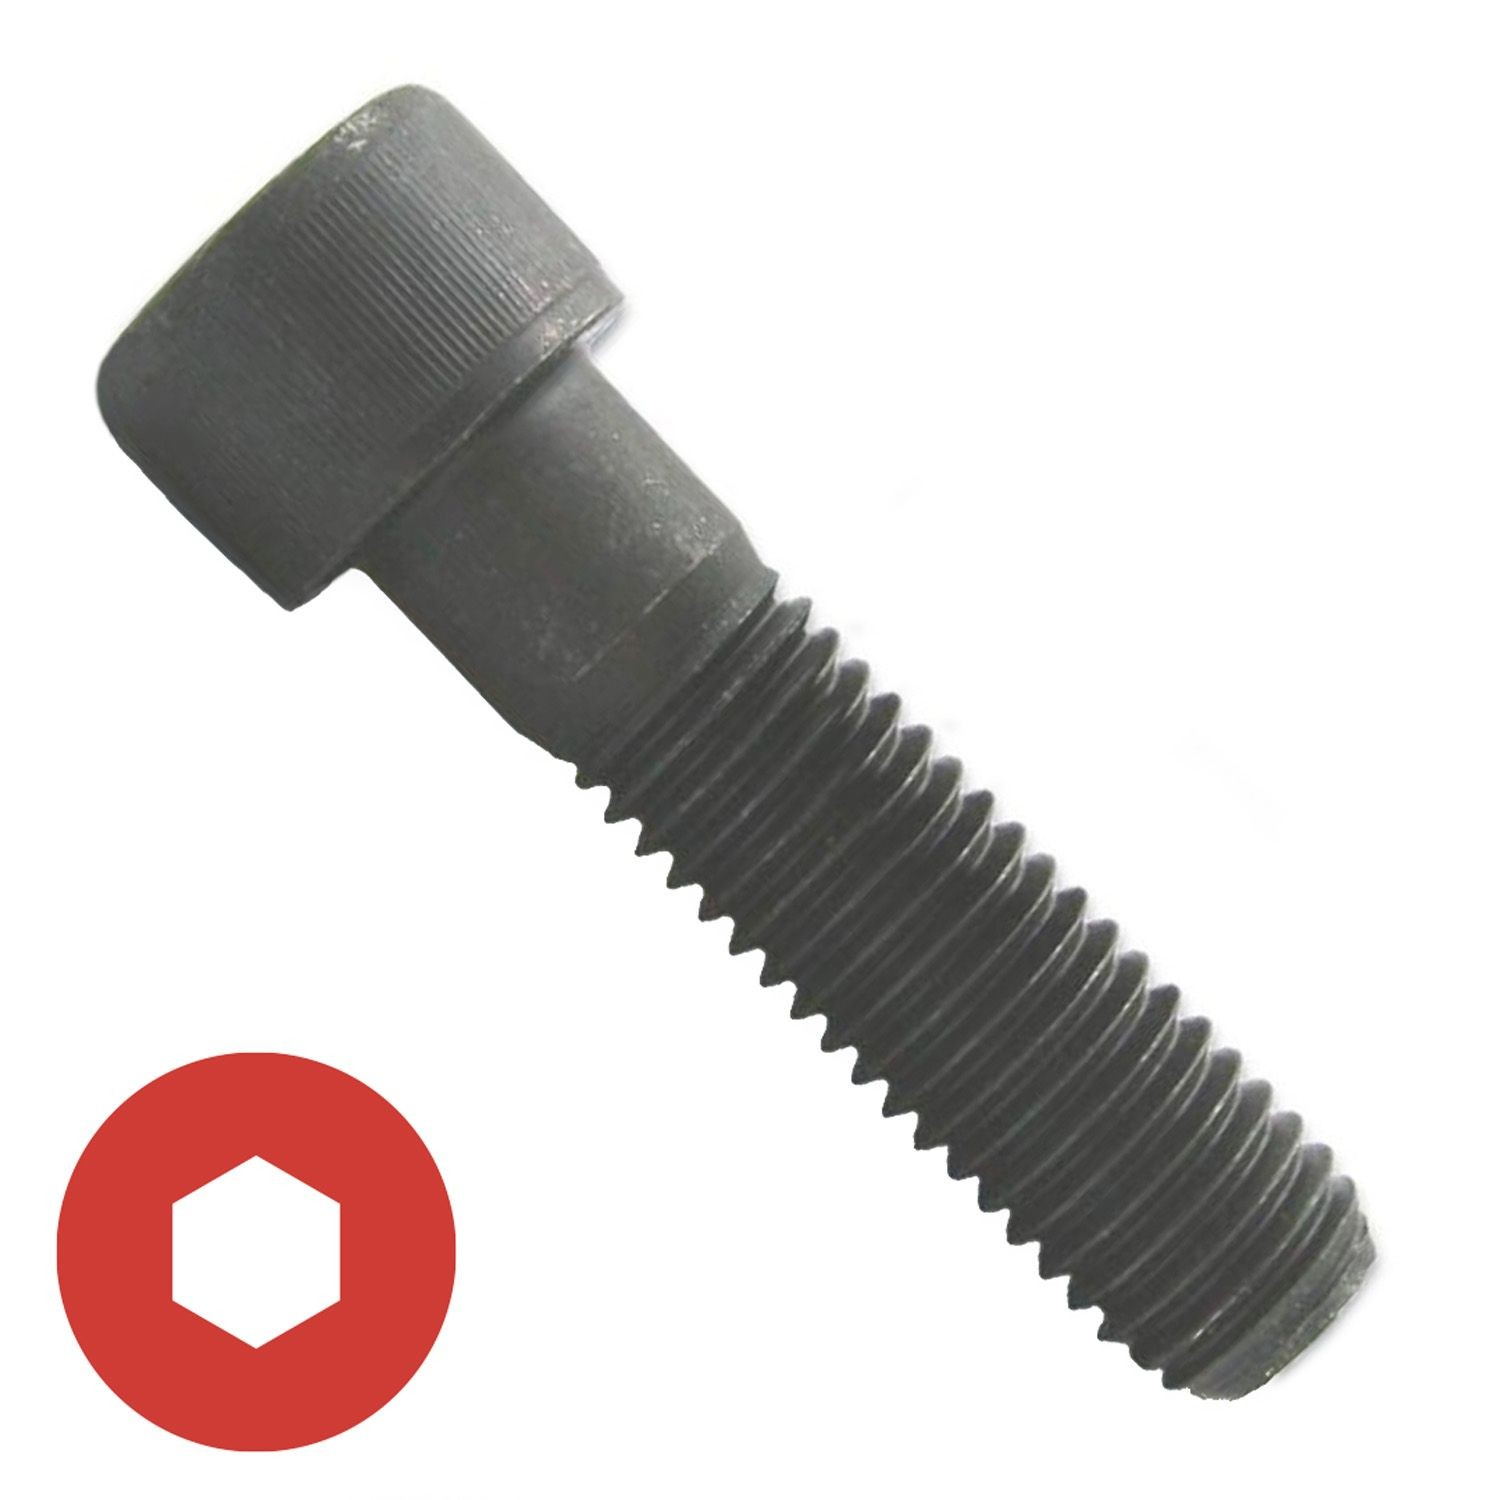 "#10-32 x 2-1/2"" Socket Head Cap Screw"